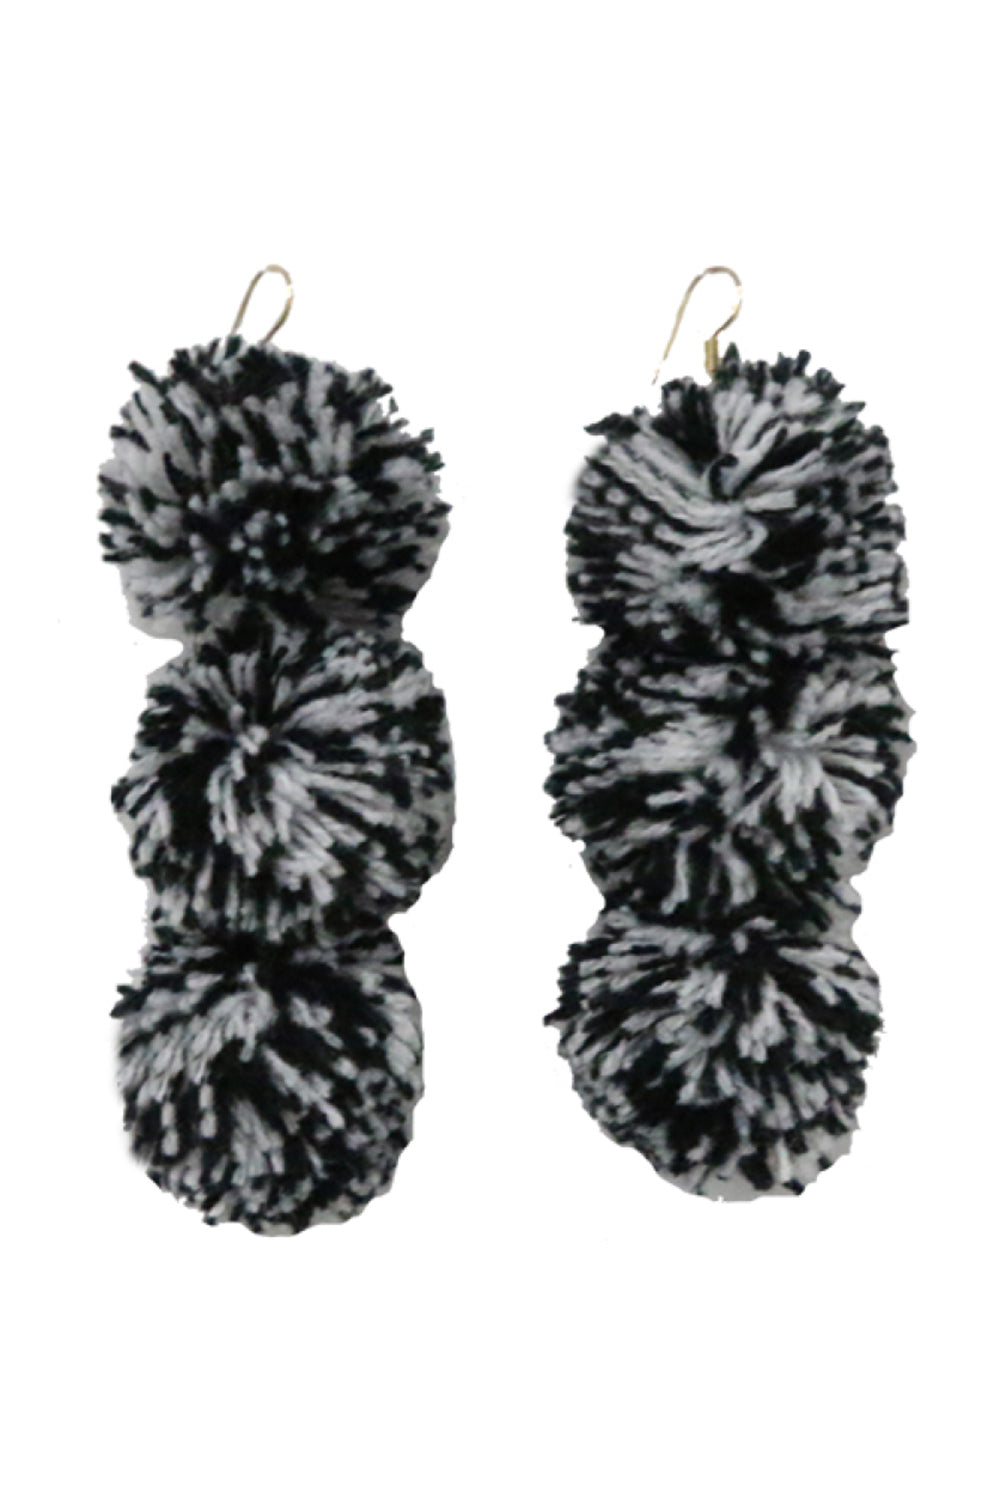 Caprice Starry Night Pompom Earrings - MISA Los Angeles